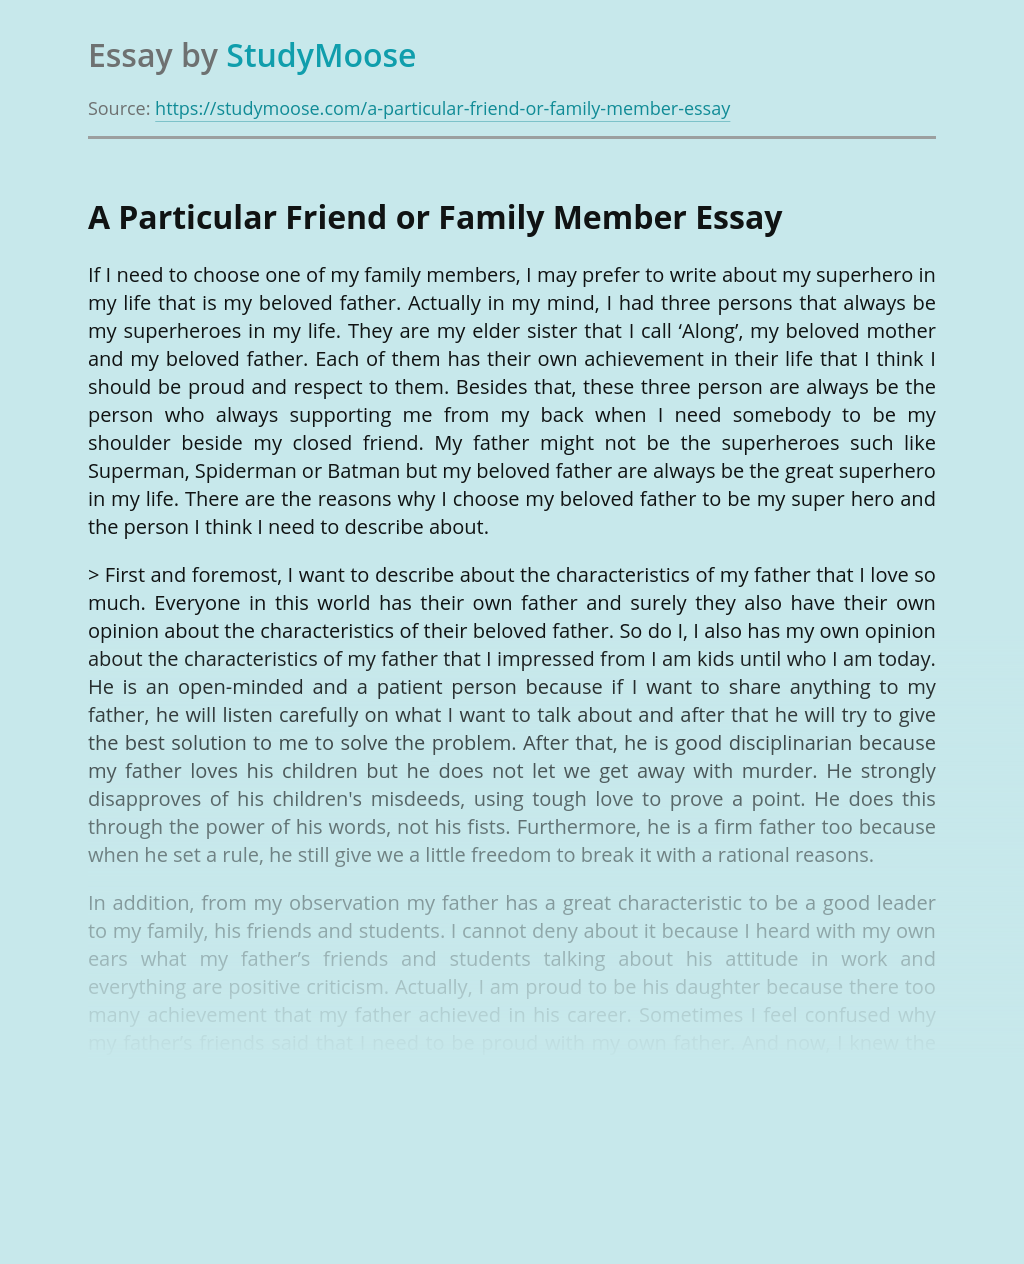 A Particular Friend or Family Member